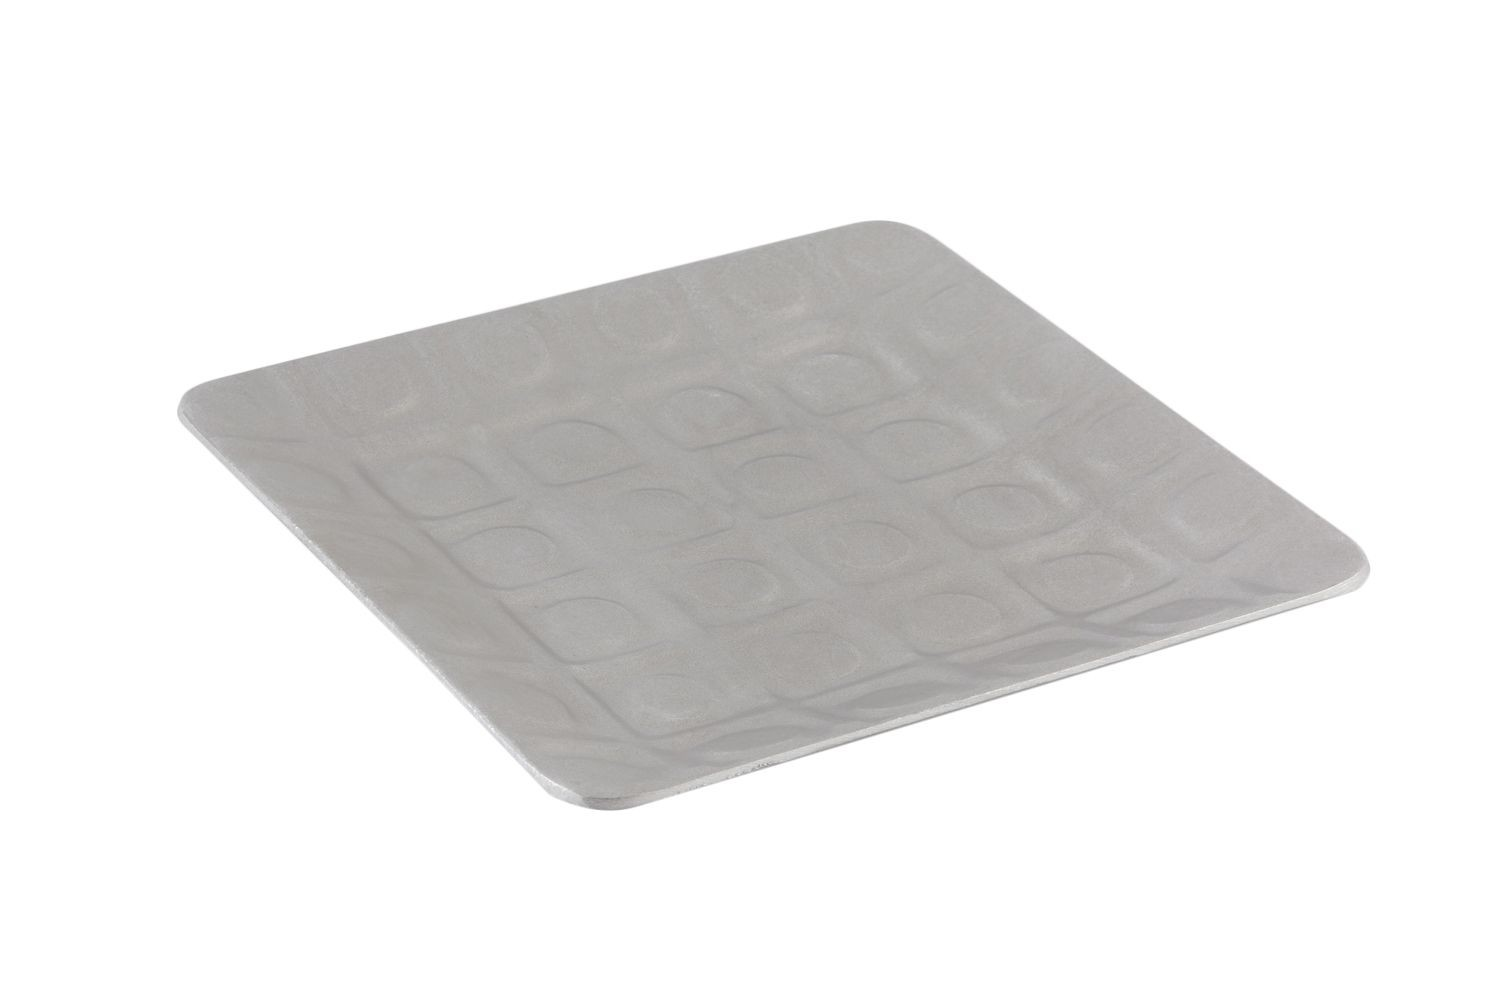 "Bon Chef 9923P Circle-Embossed Square Platter, Pewter Glo 10"" x 10"", Set of 4"